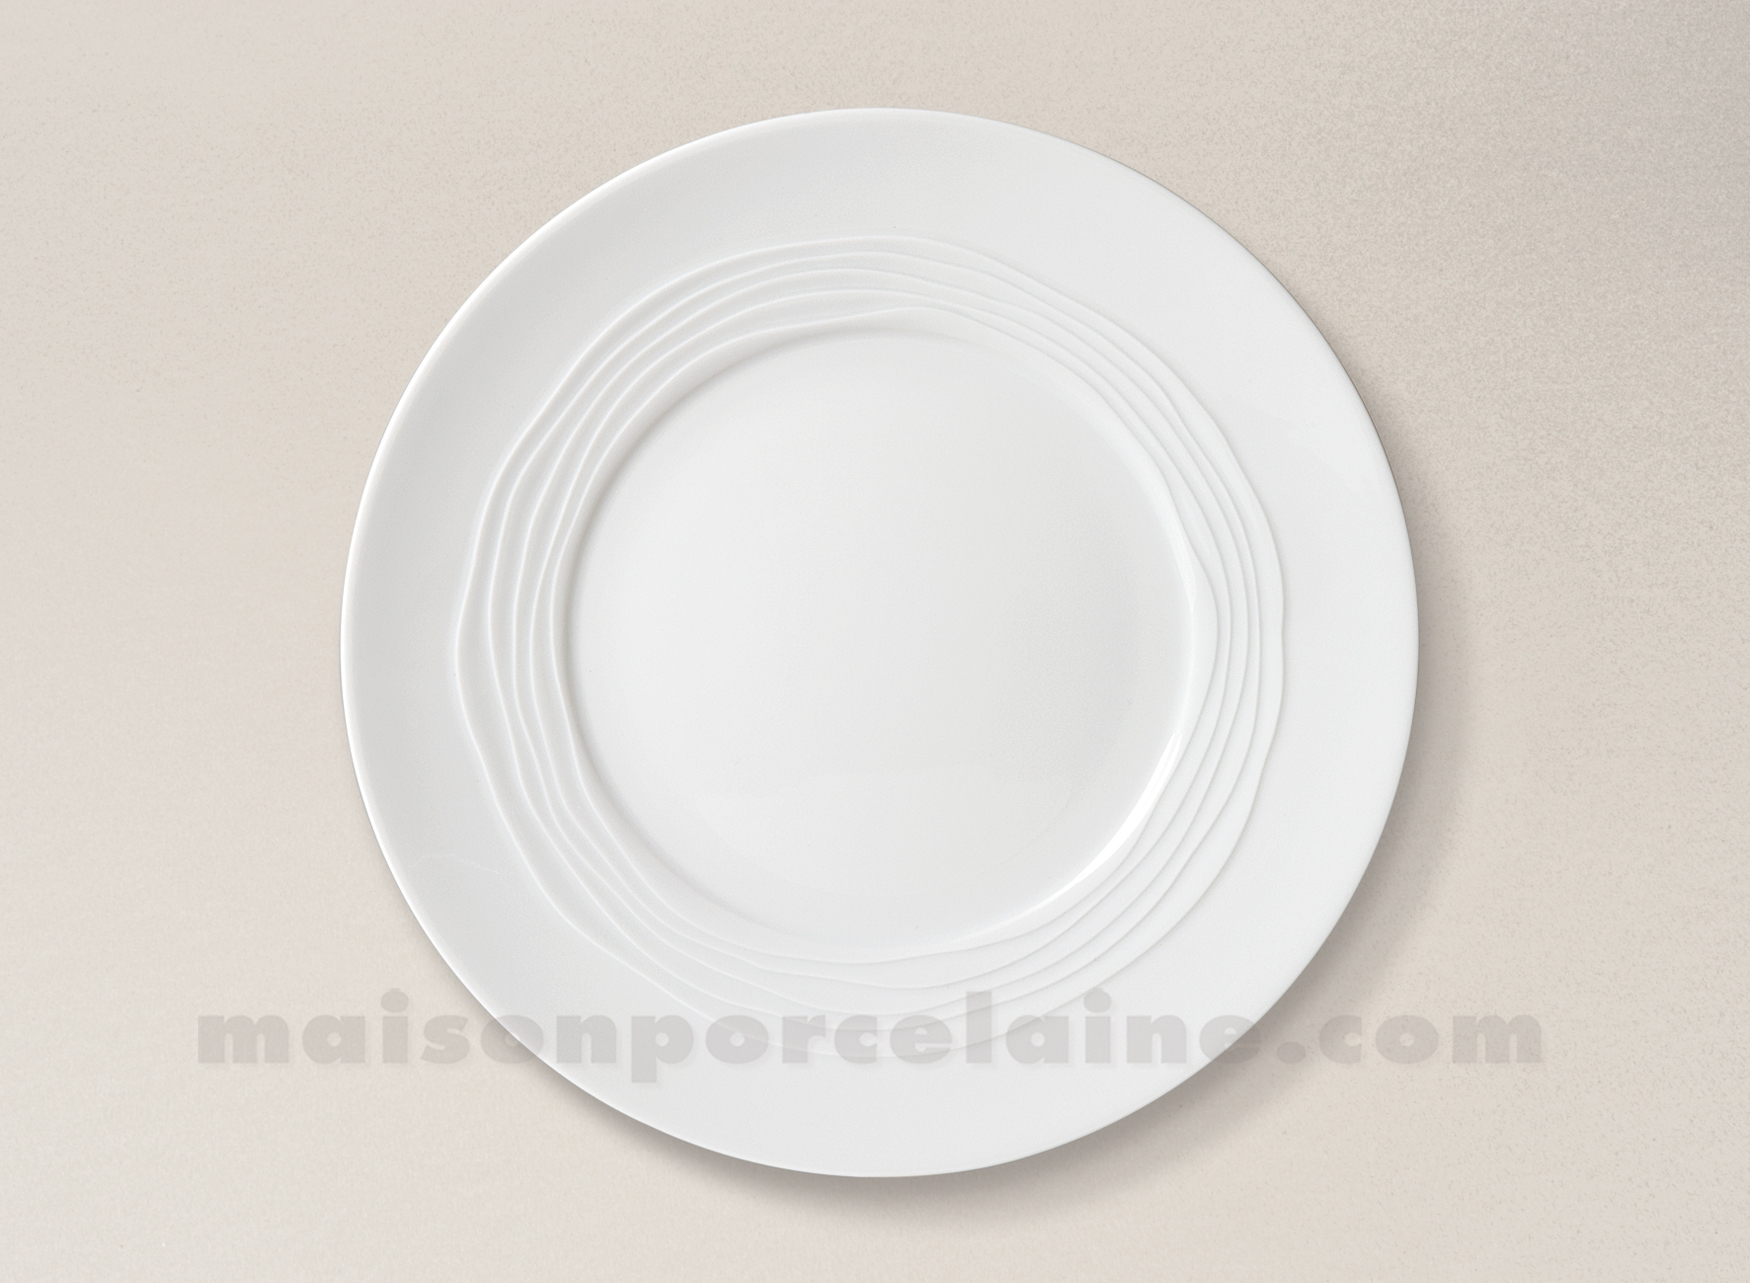 assiette plate limoges porcelaine blanche onde gravee d27. Black Bedroom Furniture Sets. Home Design Ideas